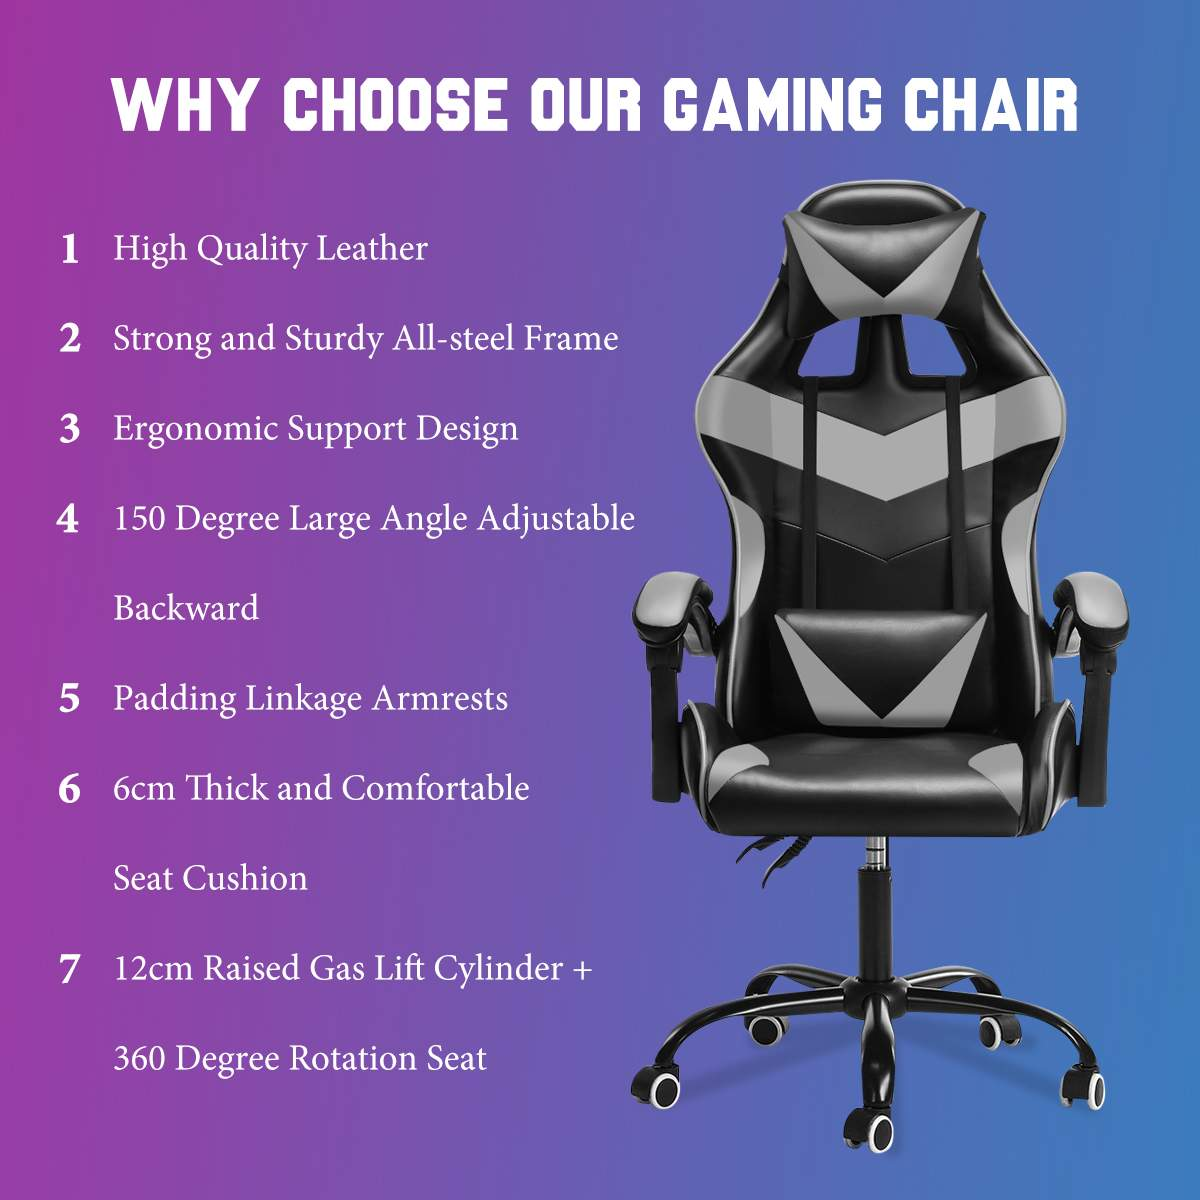 H2f42a4d47c4a4562a202de618f9b334bi - Adjustable Office Chair Gaming Ergonomic Leather Racing Desk Chairs Gaming Computer Chaise Game Chairs Reclining Seating